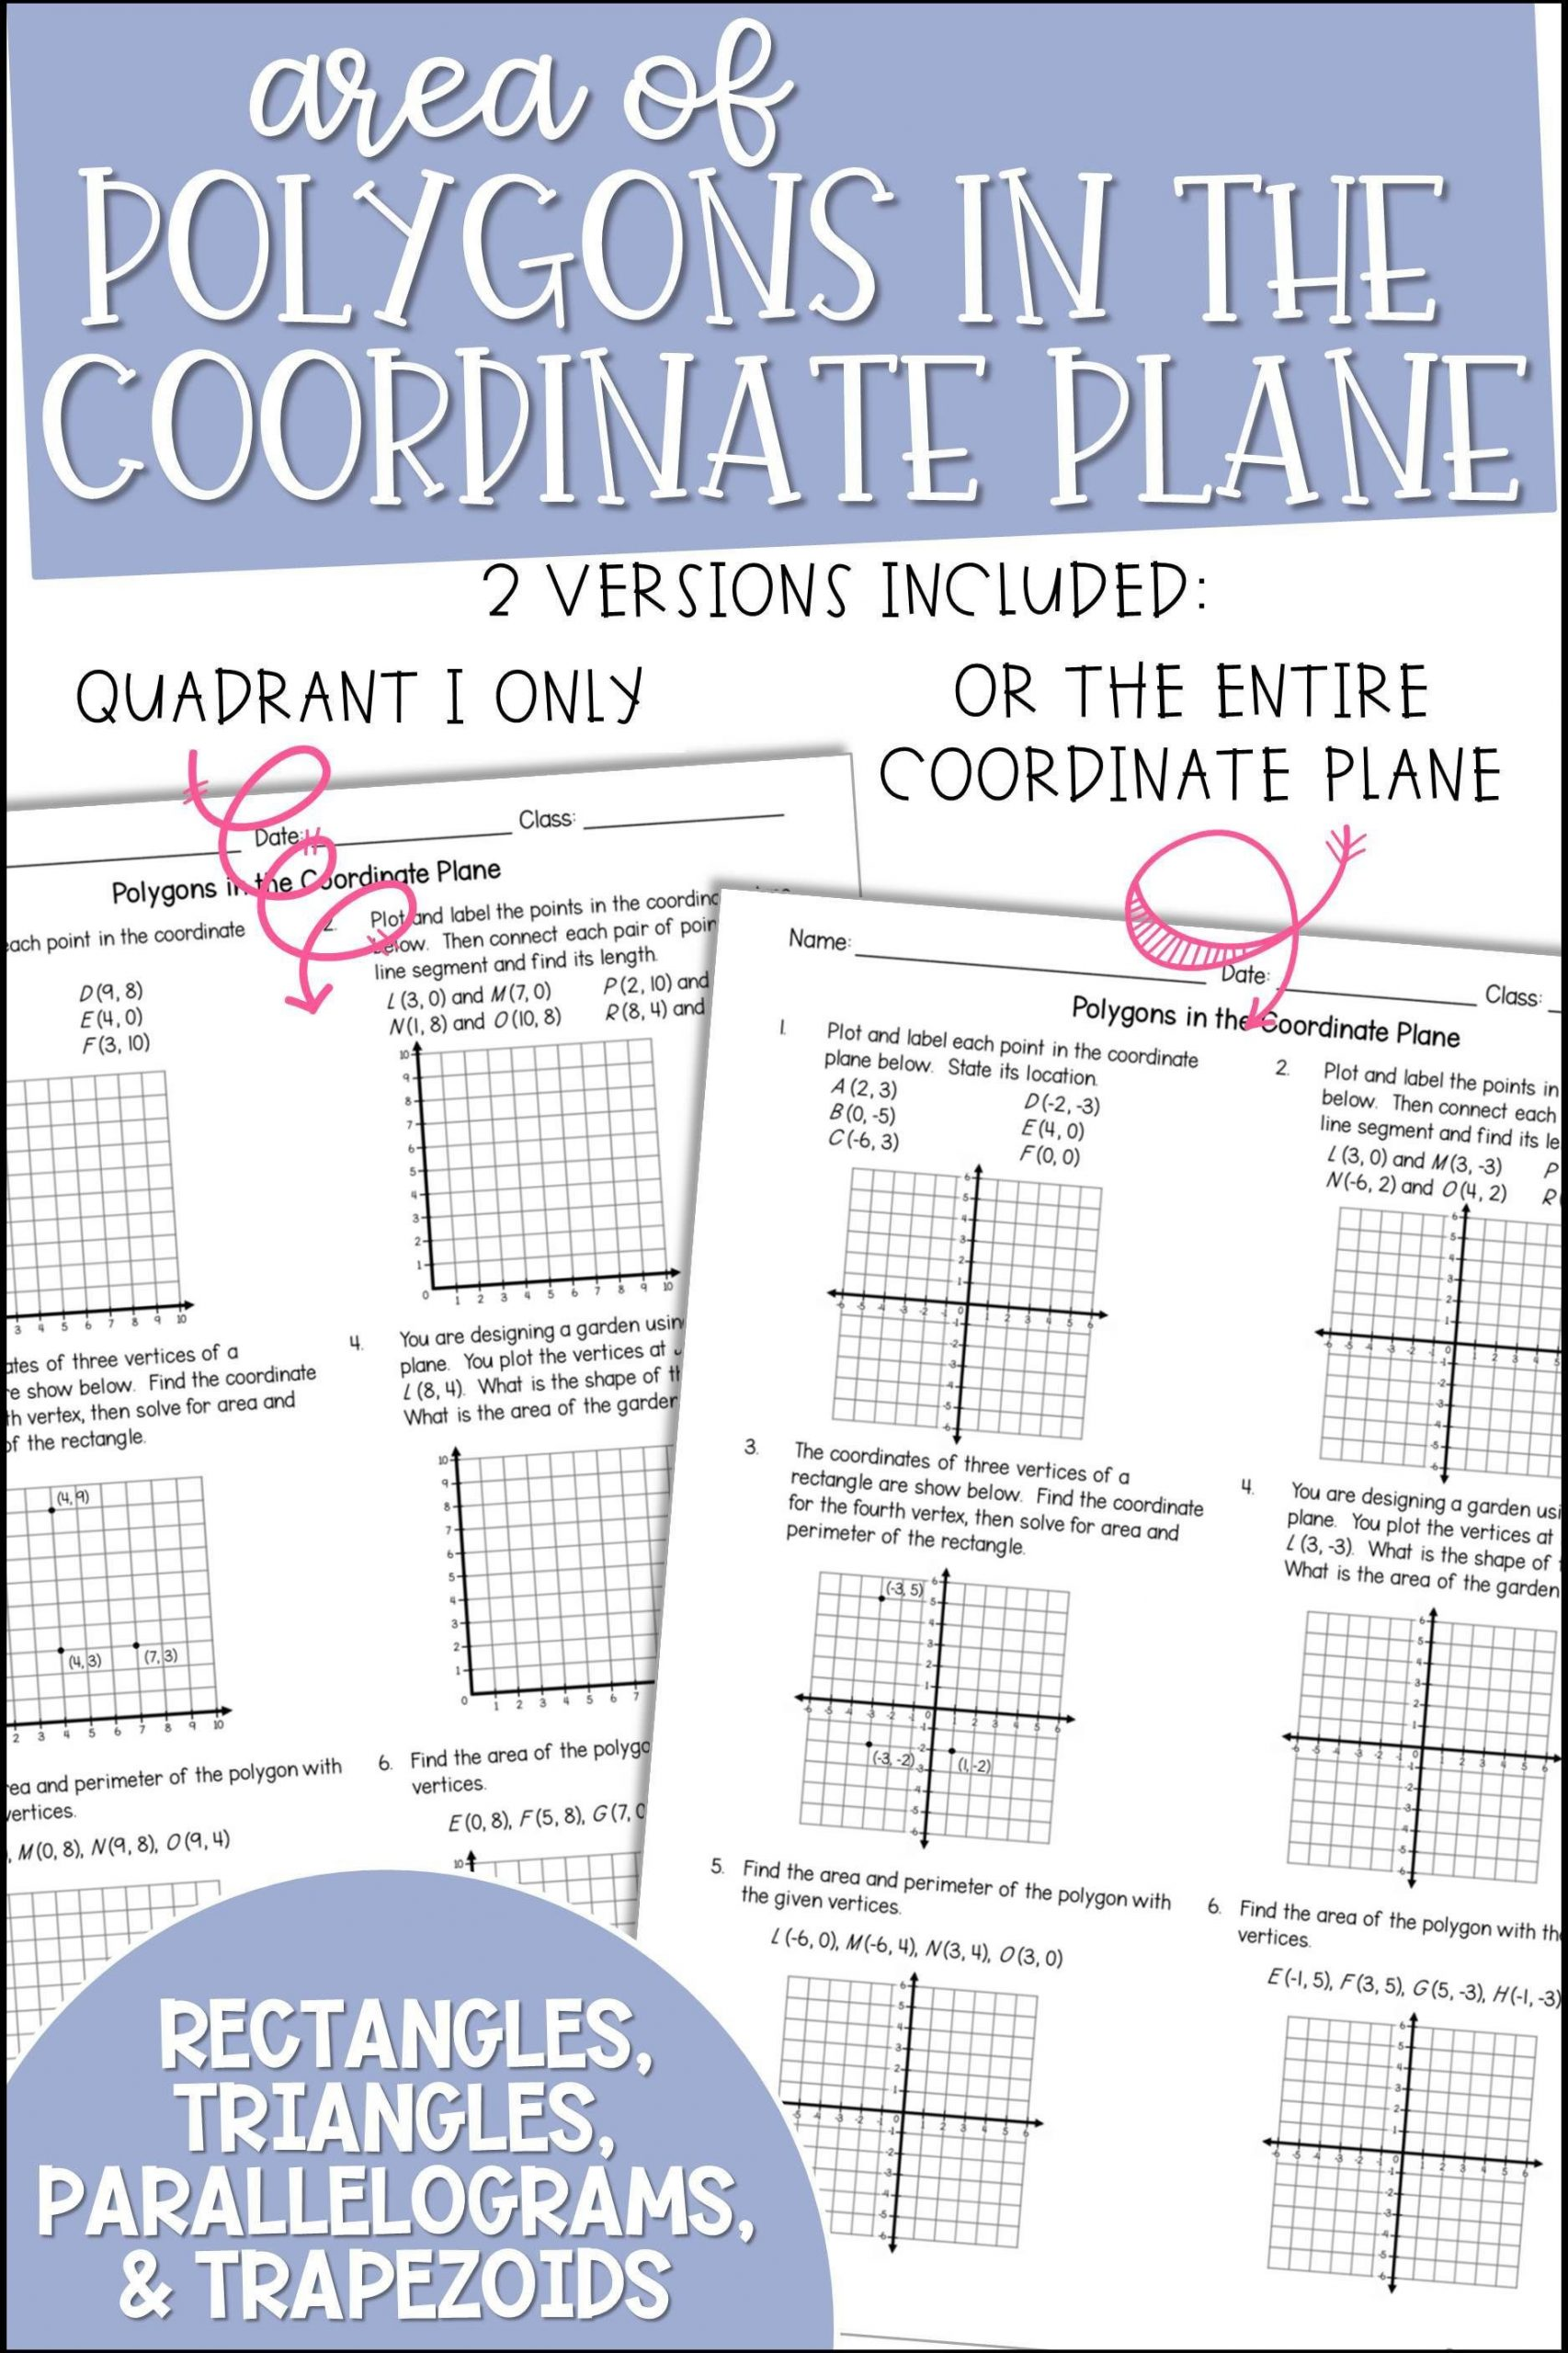 Coordinate Plane Worksheets 5th Grade area Of Polygons In the Coordinate Plane